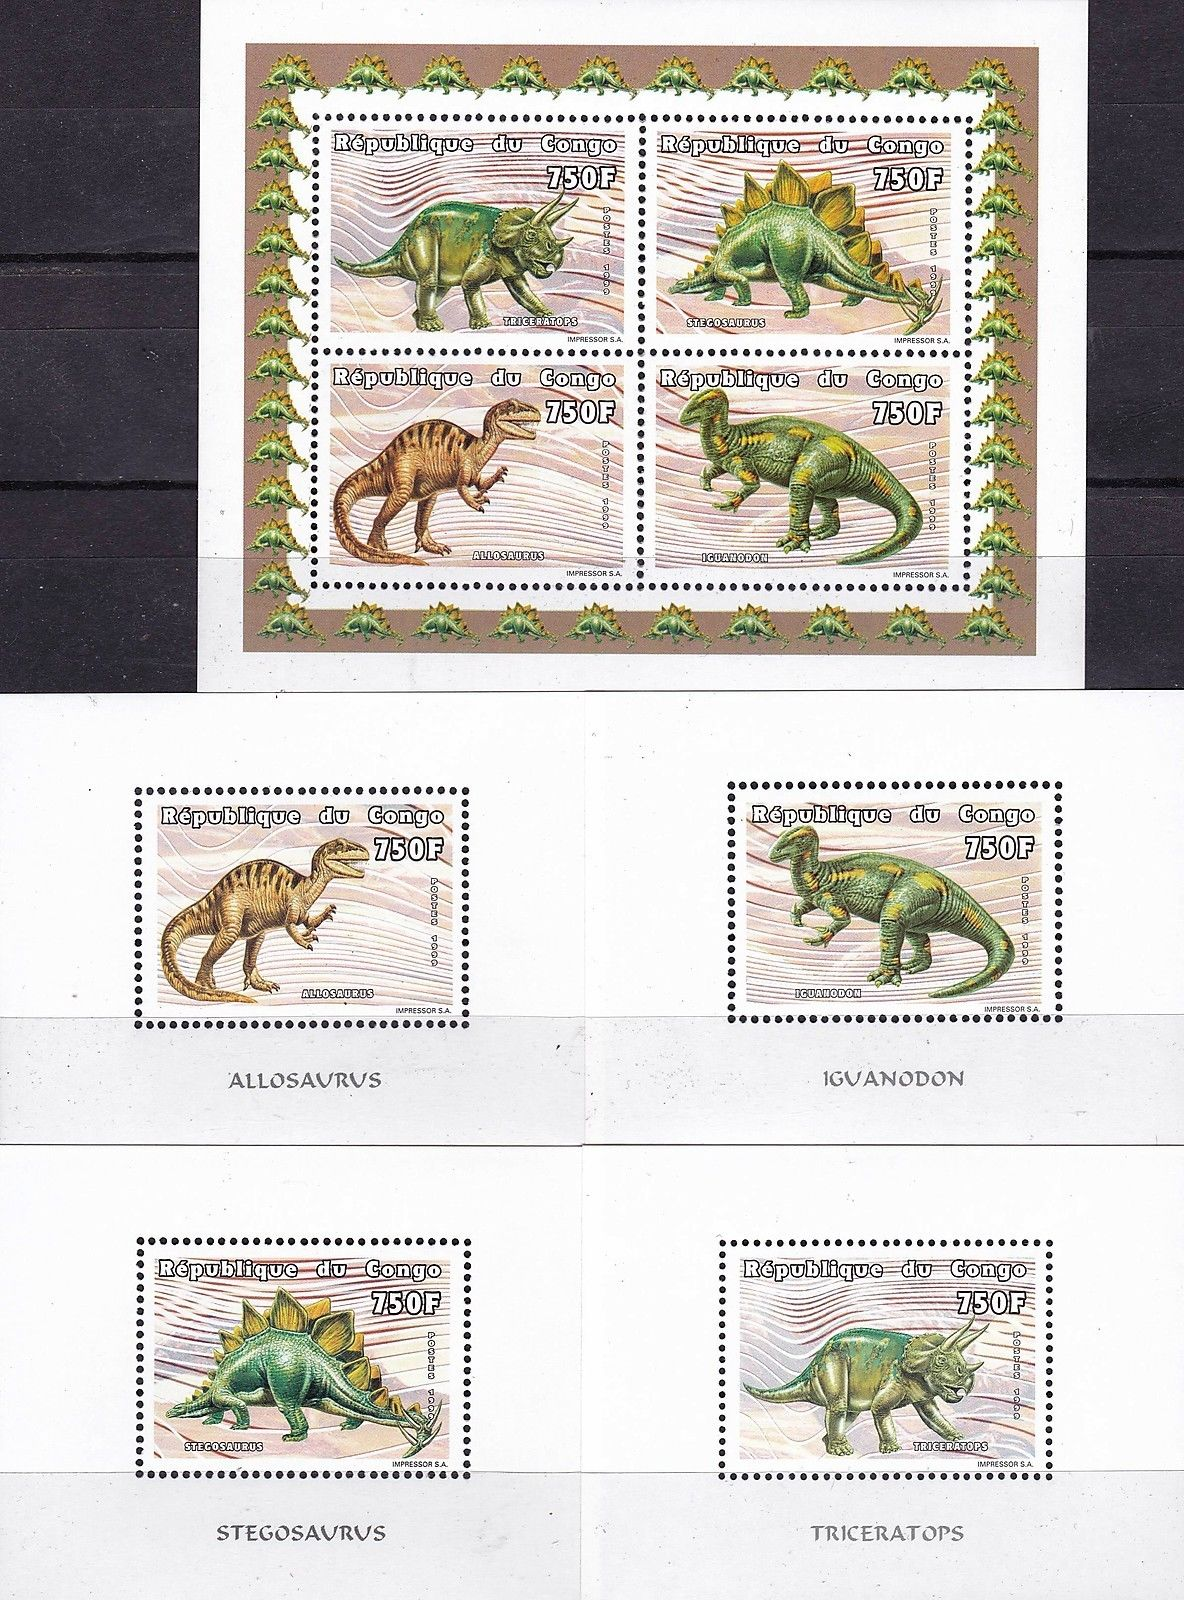 Congo 1999 S/Sheet & Stamps Prehistoric Dinosaurs